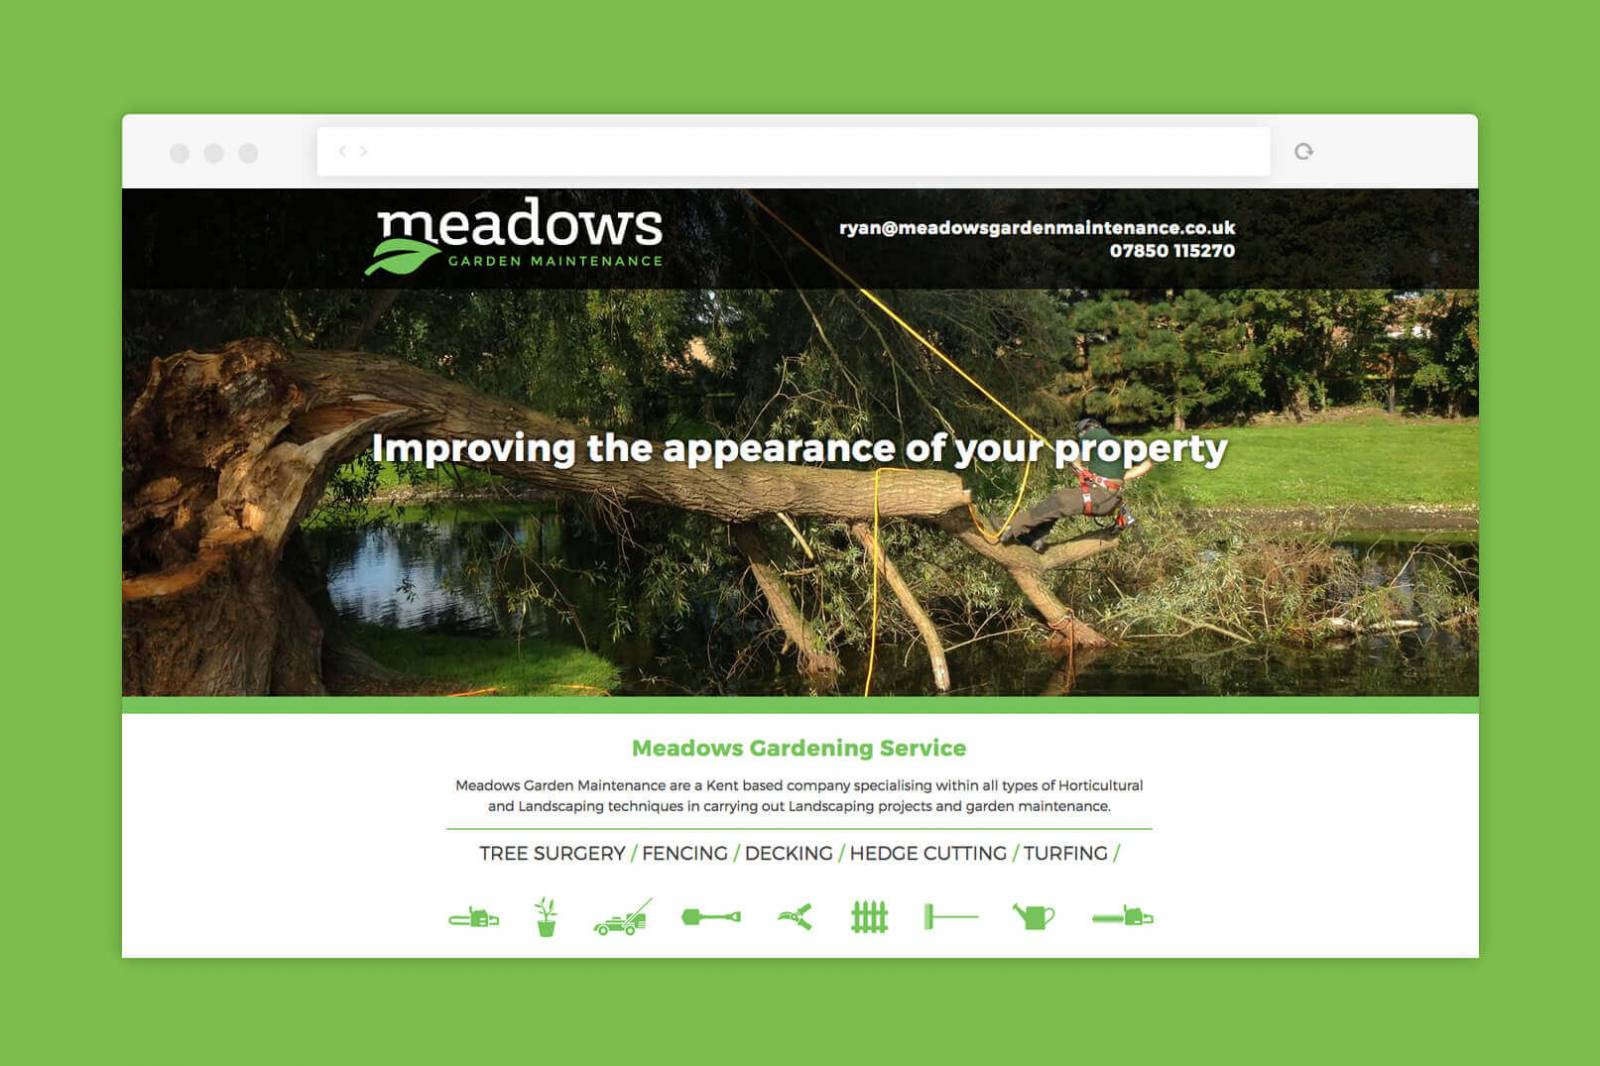 Website-Meadows-website-corporate-identity-agency-graphic-design-canterbury.jpg